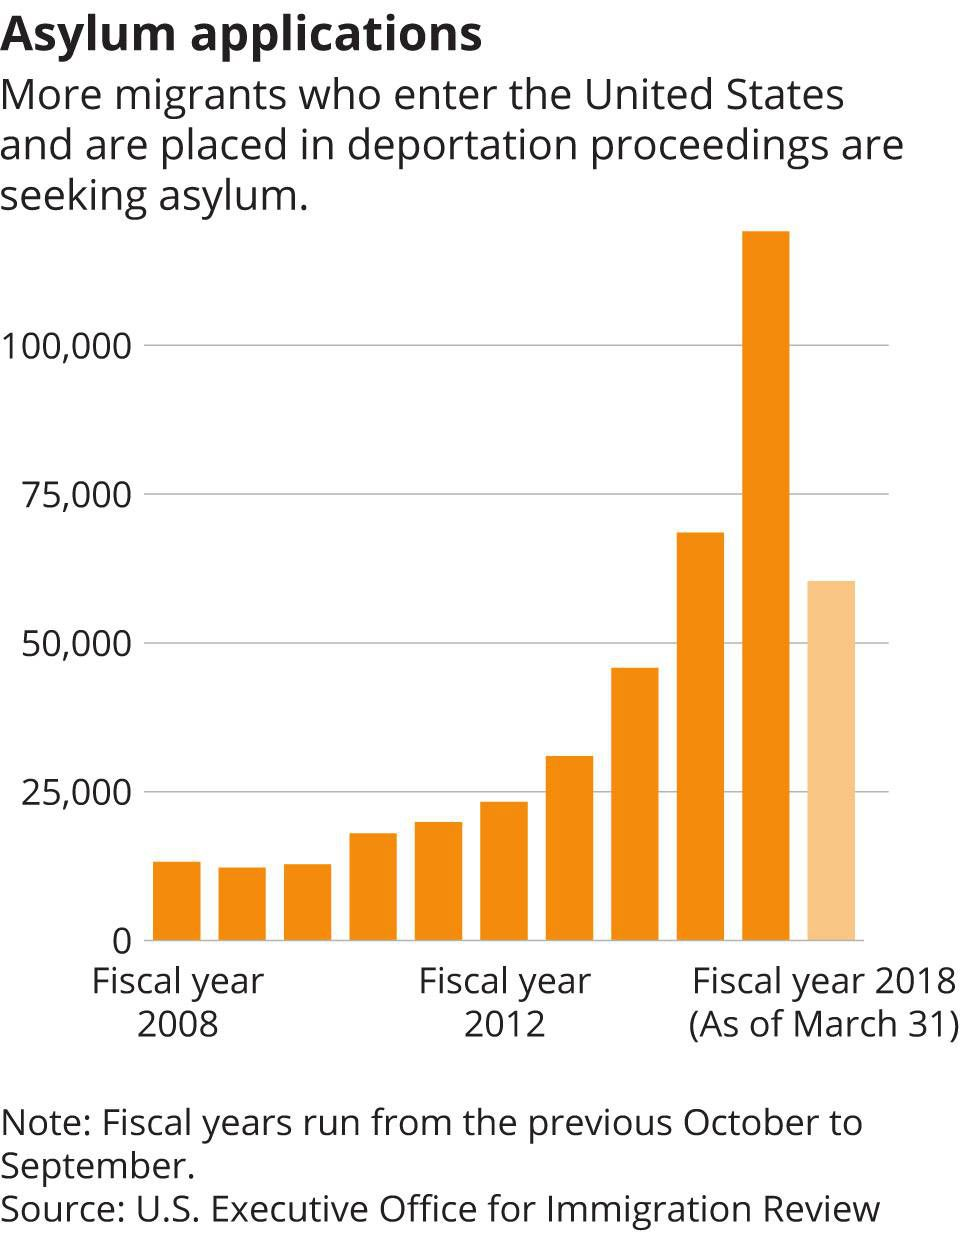 How Donald Trump narrowed the path to asylum for migrant